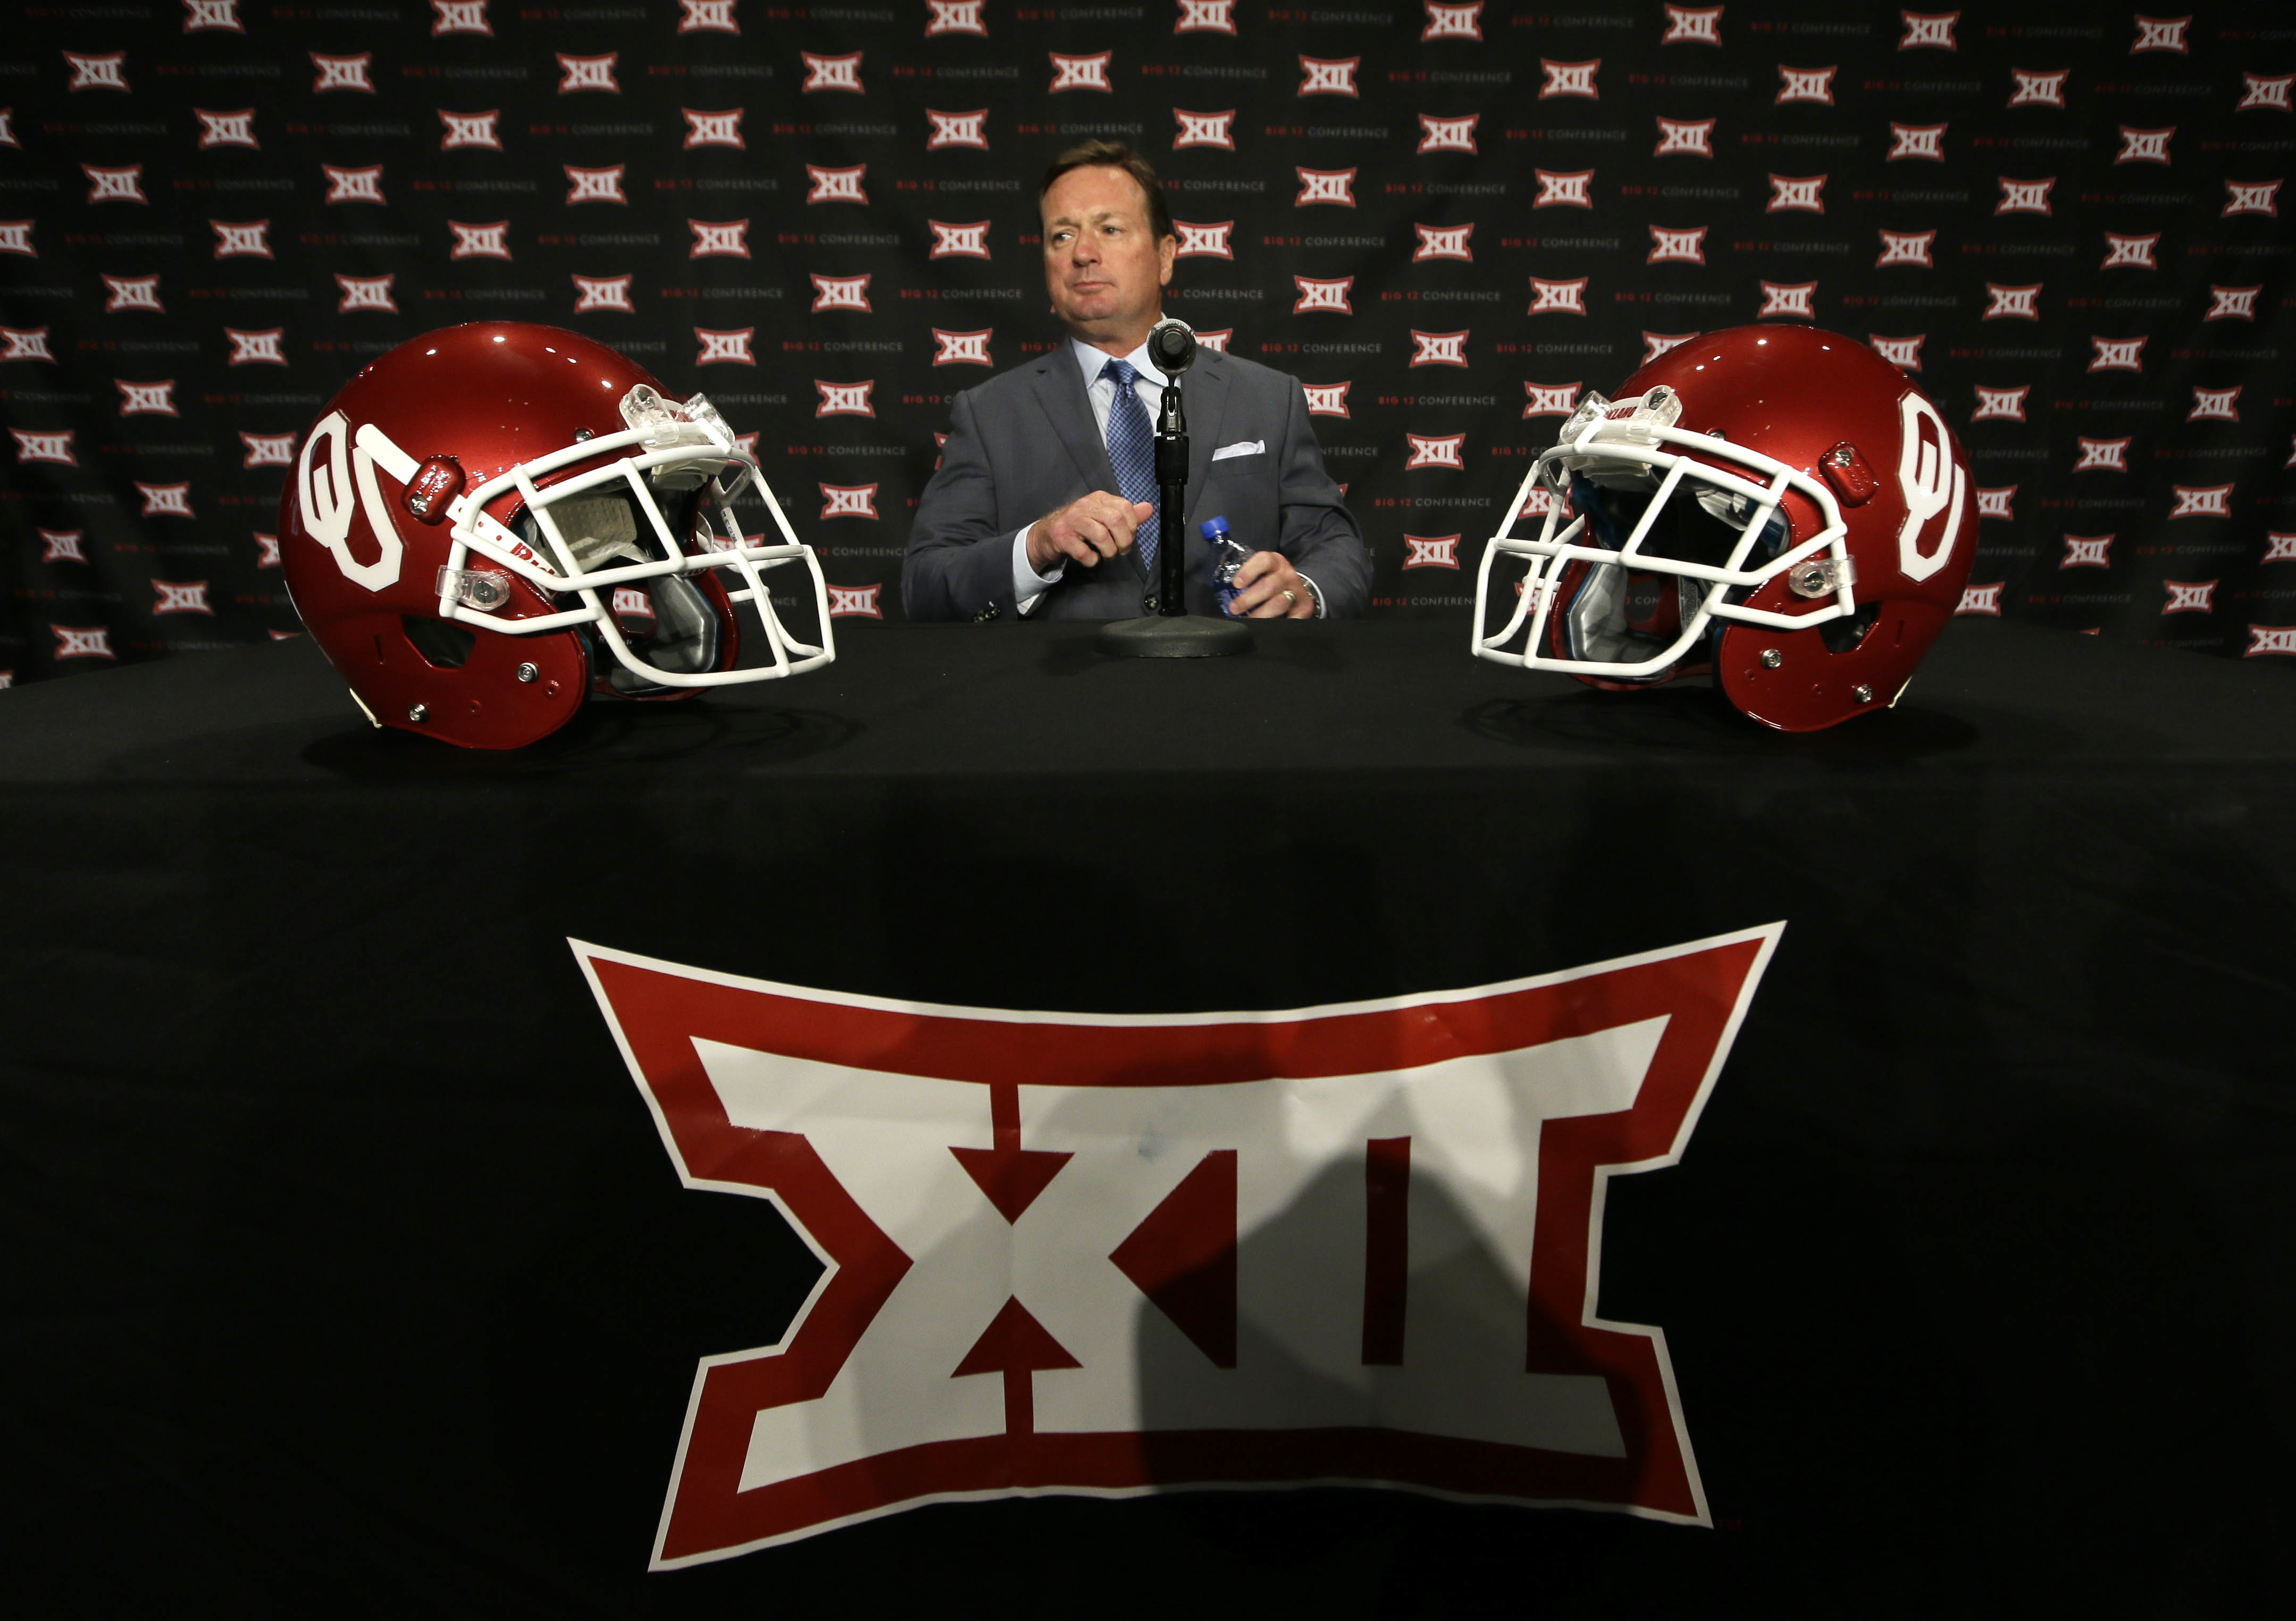 CORRECTS THE COACHES NAME TO BOB STOOPS, AND NOT MIKE GUNDY AS ORIGINALLY SENT - Oklahoma head coach Bob Stoops takes a seat to speak to reporters during the Big 12 college football media days in Dallas, Tuesday, July 19, 2016. (AP Photo/LM Otero)